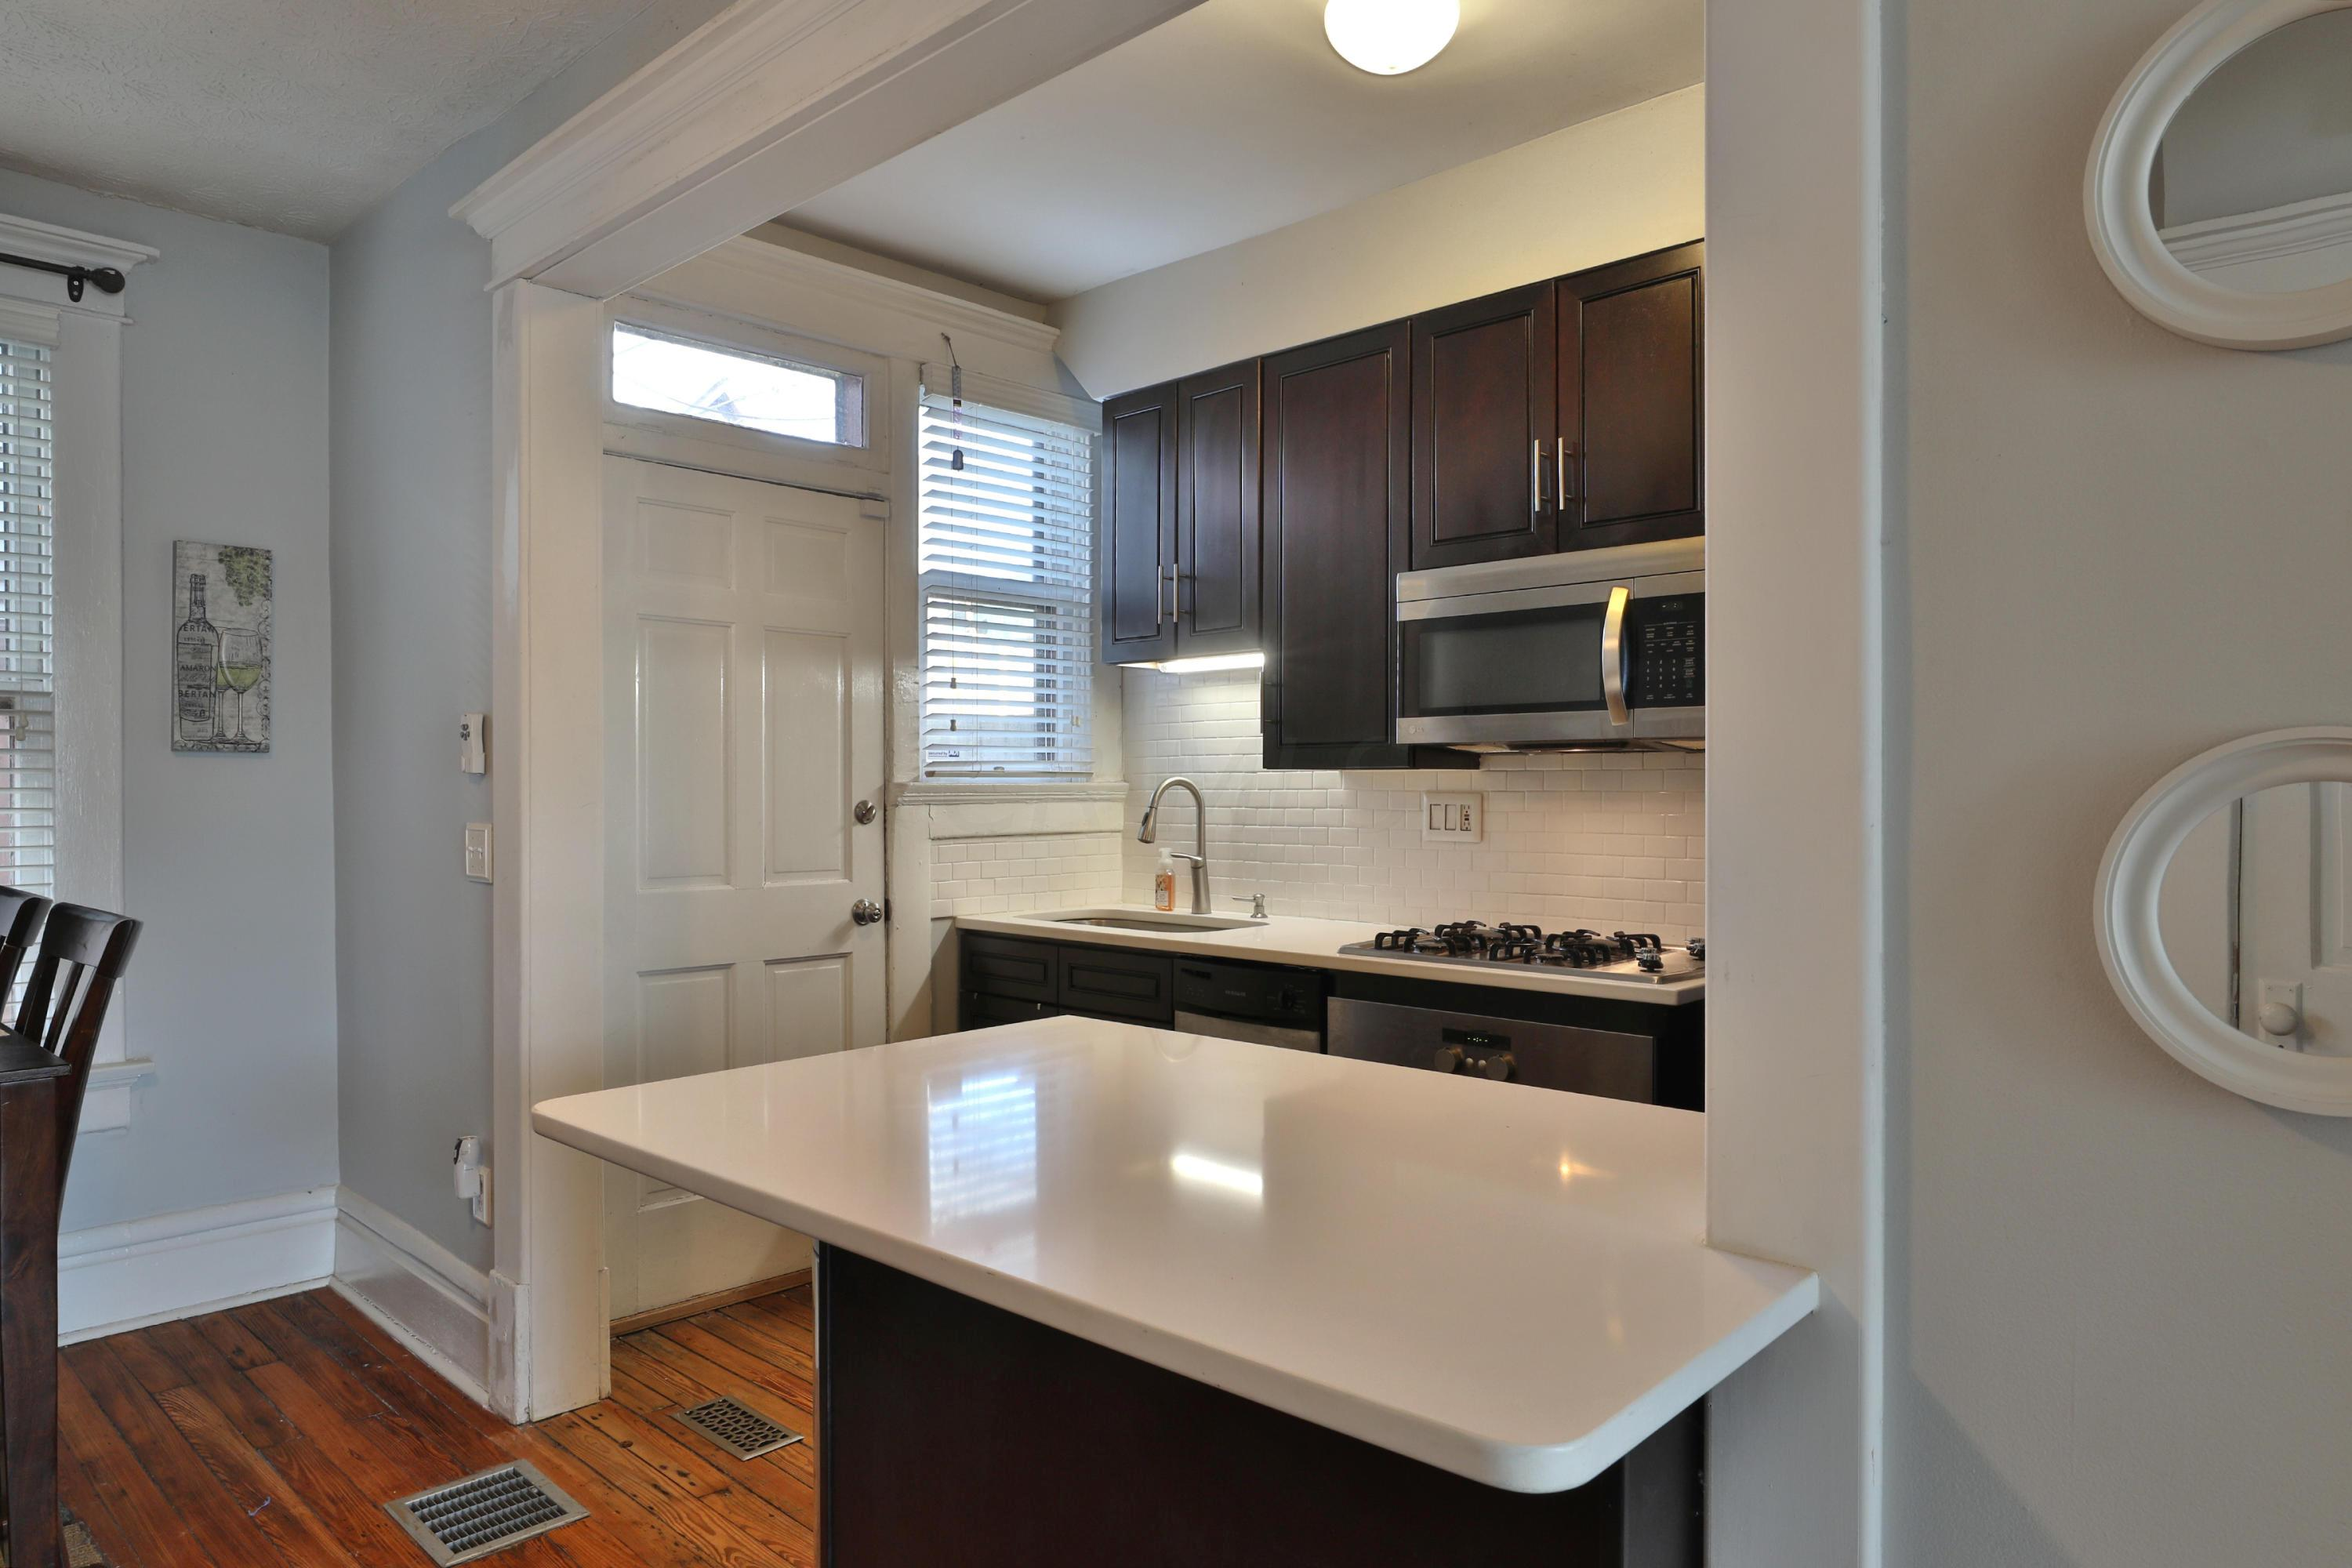 923 Dennison Avenue, Columbus, Ohio 43201, 2 Bedrooms Bedrooms, ,1 BathroomBathrooms,Residential,For Sale,Dennison,221000806